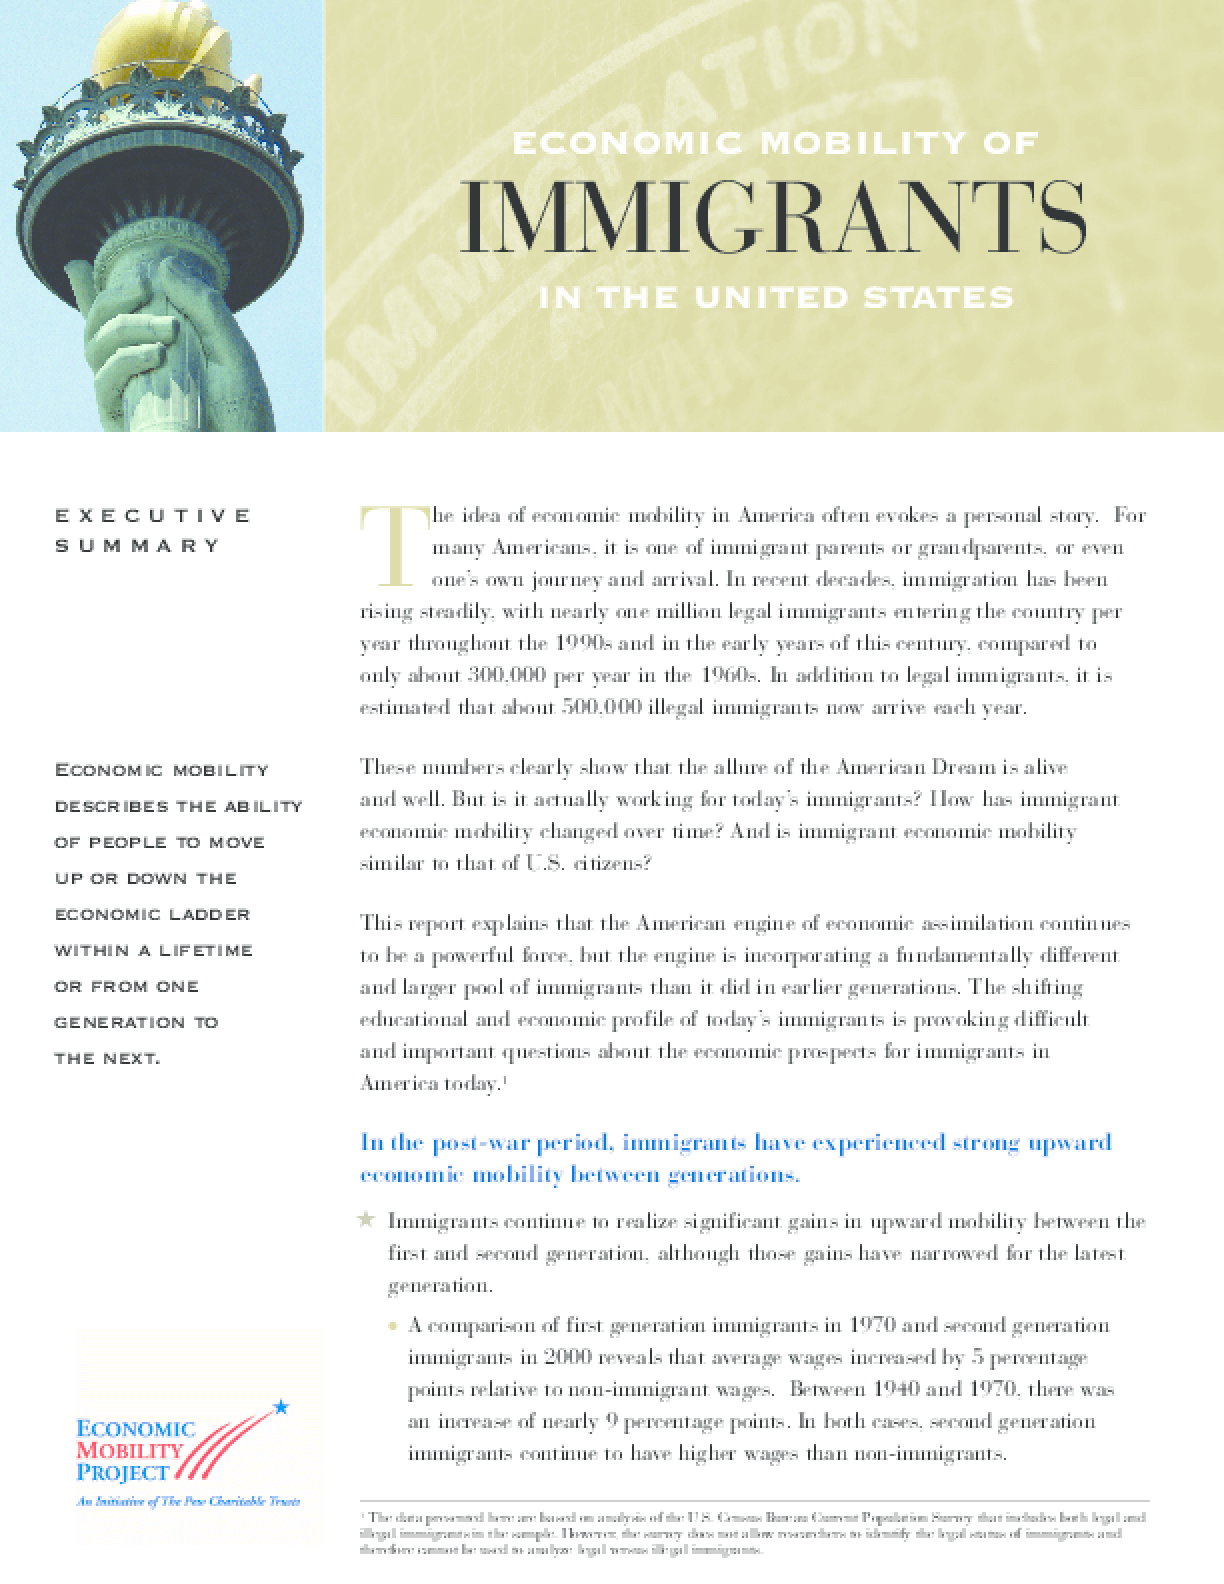 Economic Mobility of Immigrants in the United States